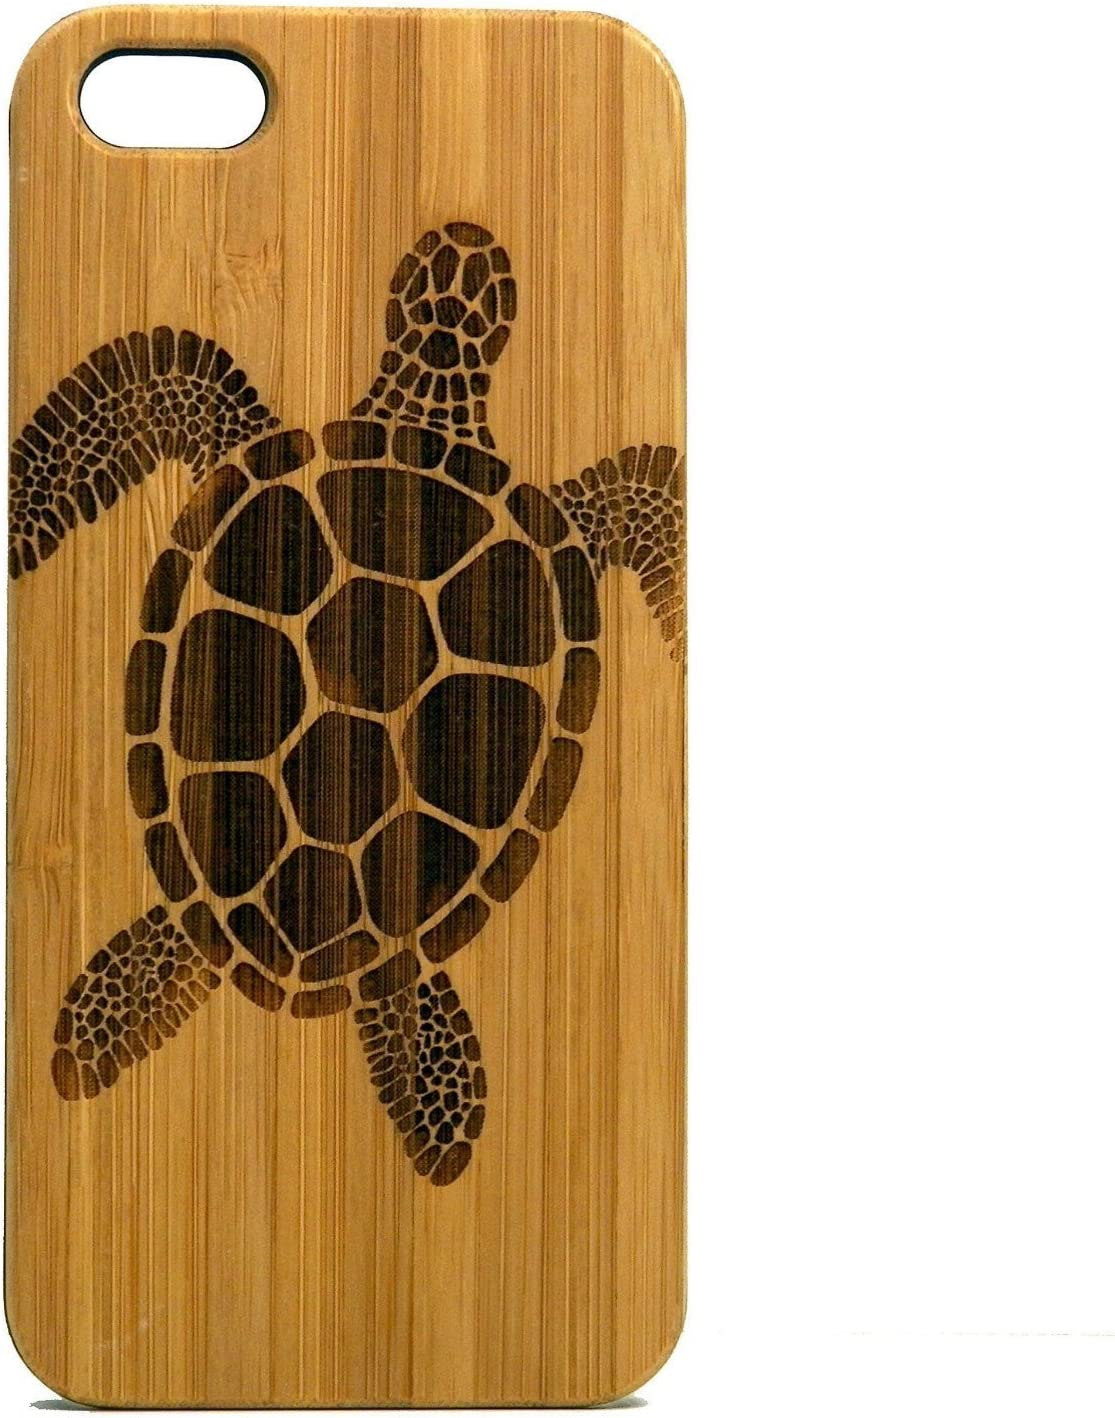 Sea Turtle iPhone 8 Plus Case/Cover by iMakeTheCase | Tribal Tattoo Ocean Sea Hawaiian Honu | Eco-Friendly Bamboo Wood Cell Phone Cover.